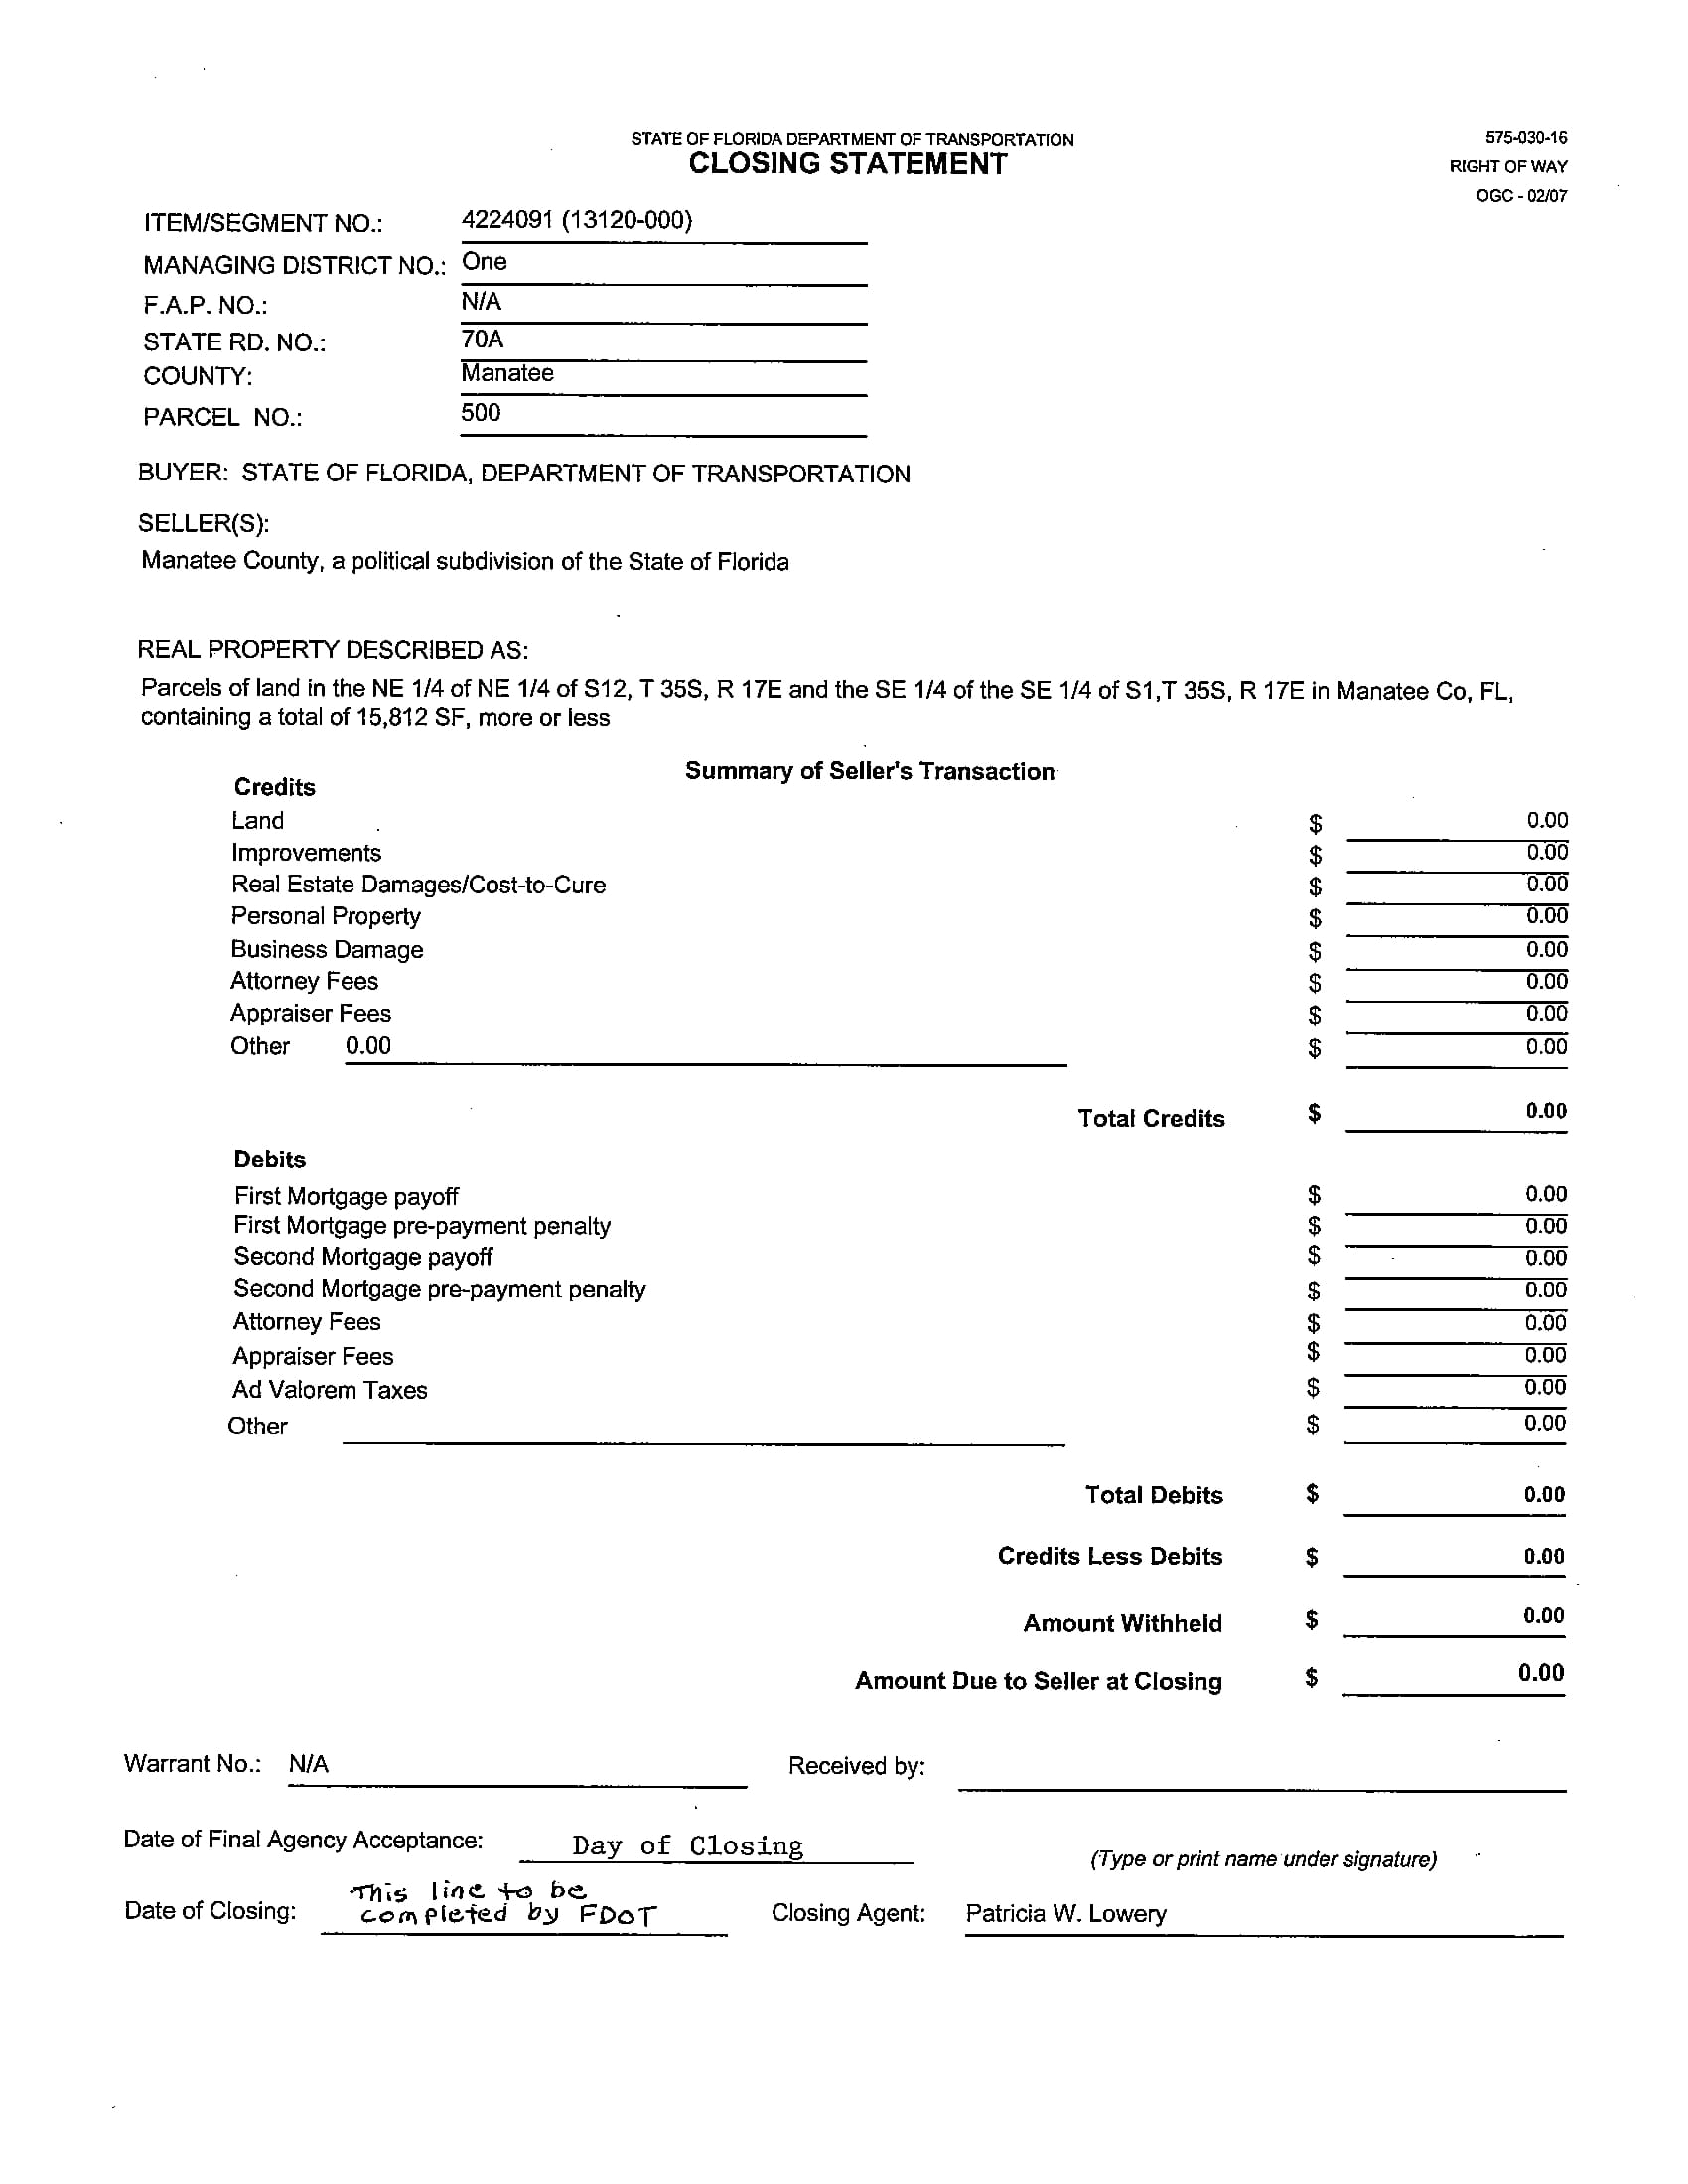 real property closing statement sample form 1